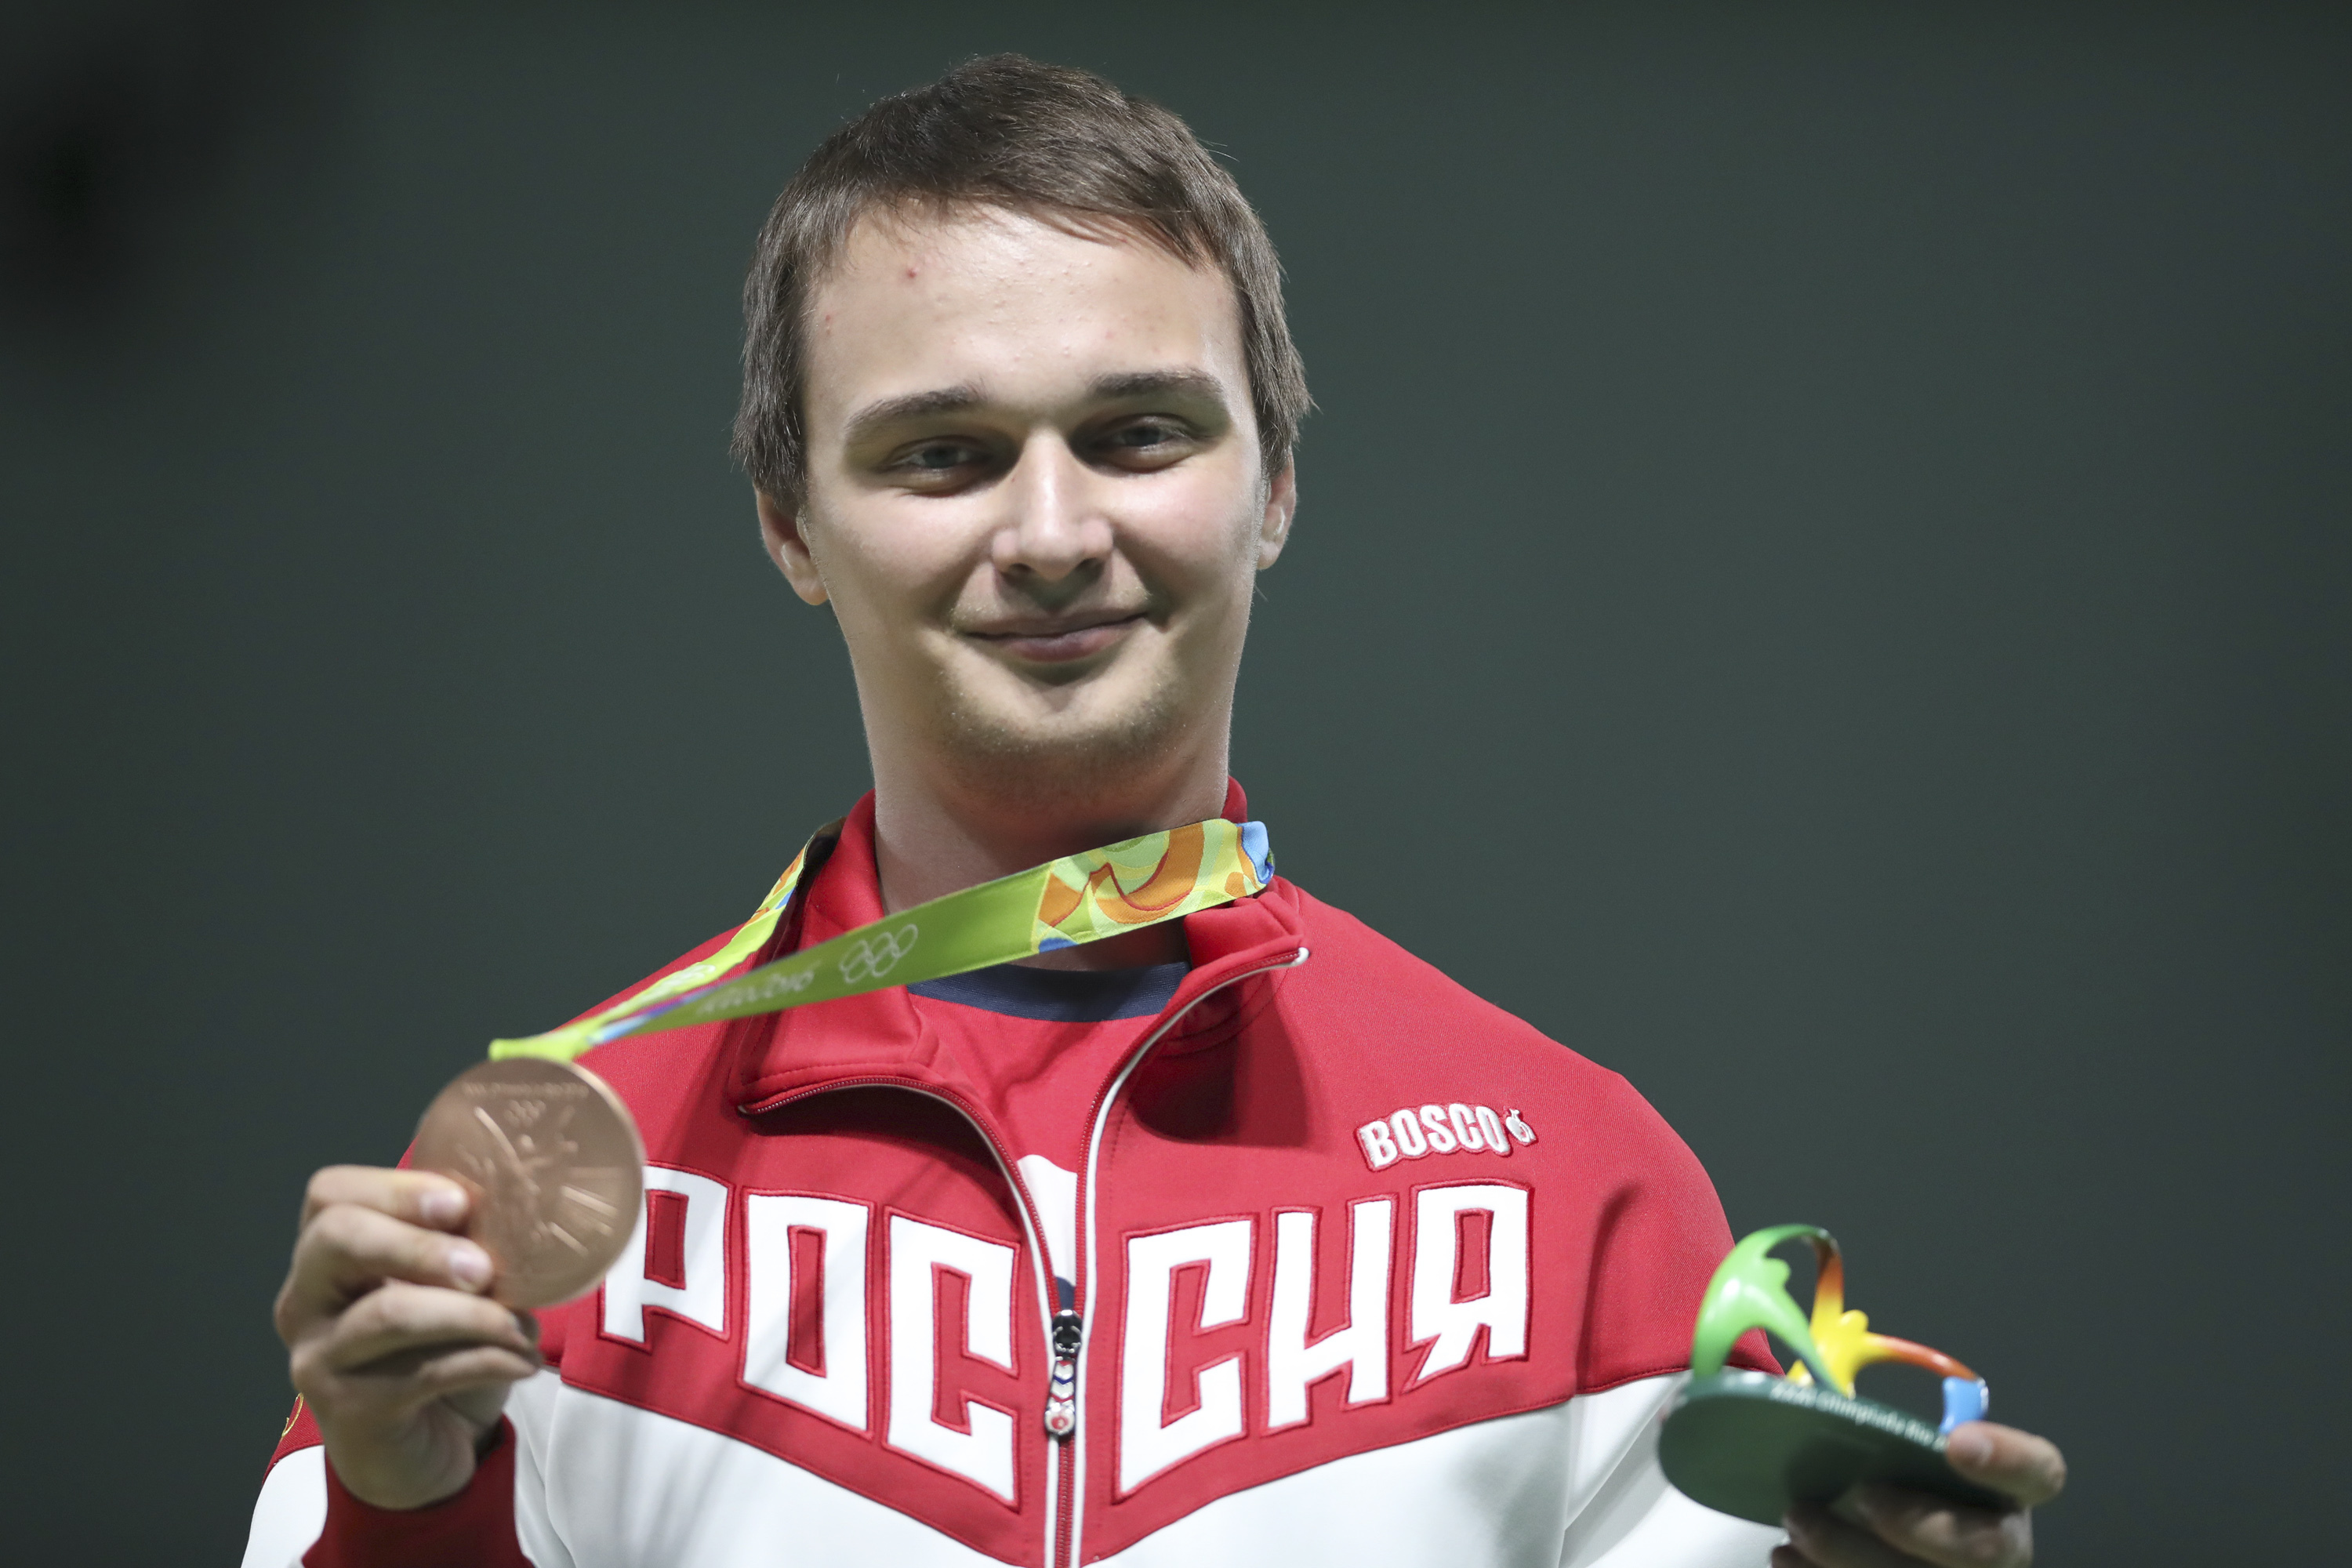 Vladimir Maslennikov of Russia celebrates with his bronze medal during the award ceremony for men's 10 meter air rifle at Olympic Shooting Center at the 2016 Summer Olympics in Rio de Janeiro, Brazil, Monday, Aug. 8, 2016. (AP Photo/Eugene Hoshiko)